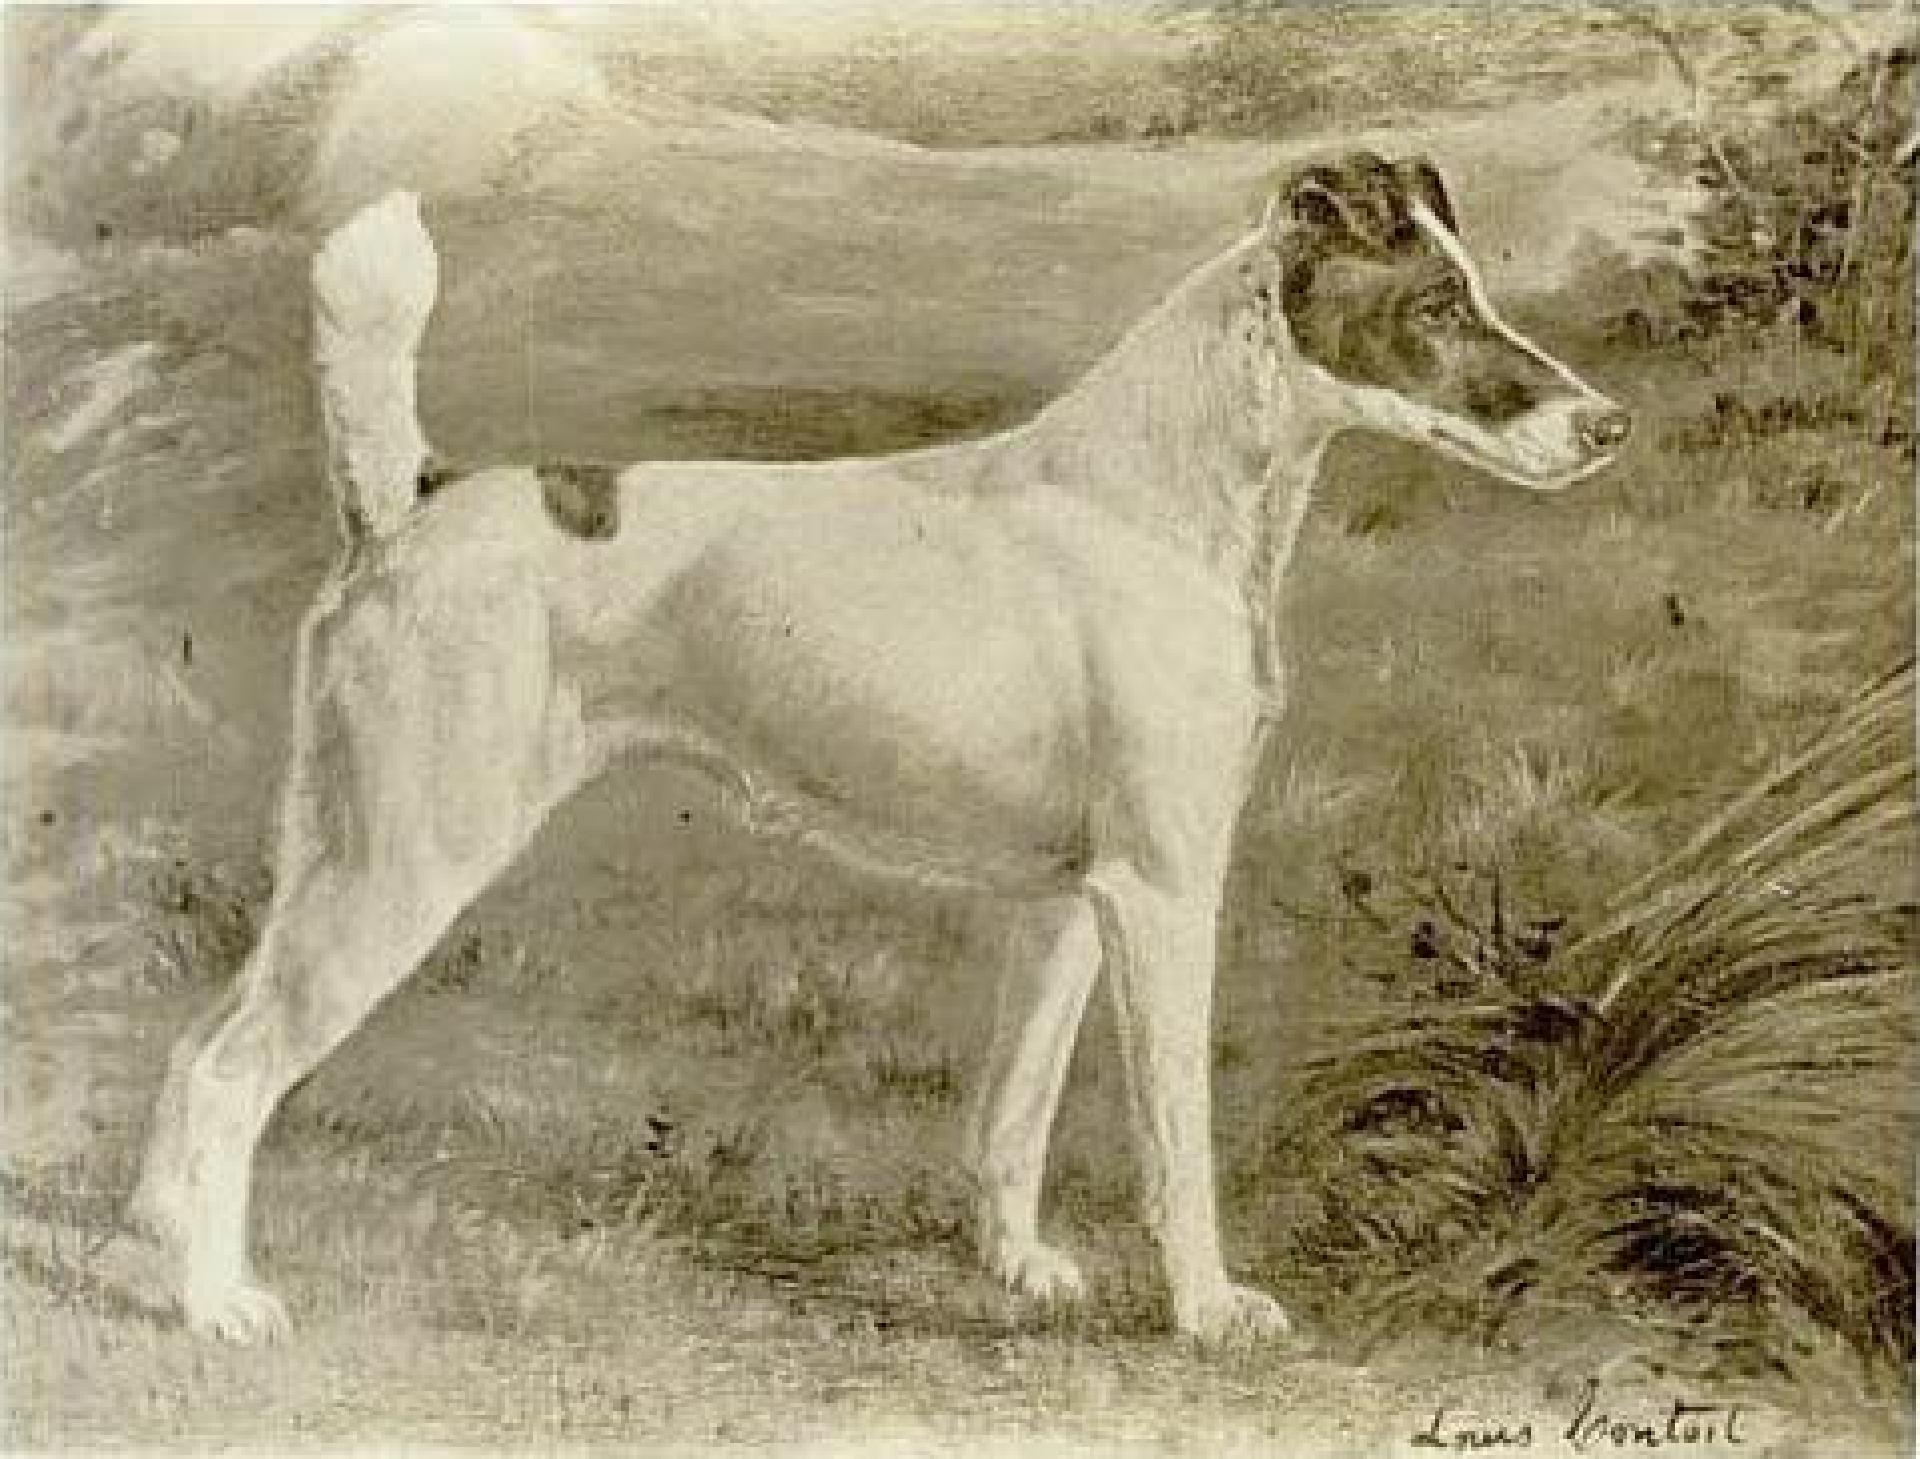 Painting of Warren Remedy, Fox Terrier. First best in show winner at the Westminster Kennel Club Dog show, and the only dog to have won that prize on three occasions. Artist is Gustav Muss-Arnolt, who died in 1927